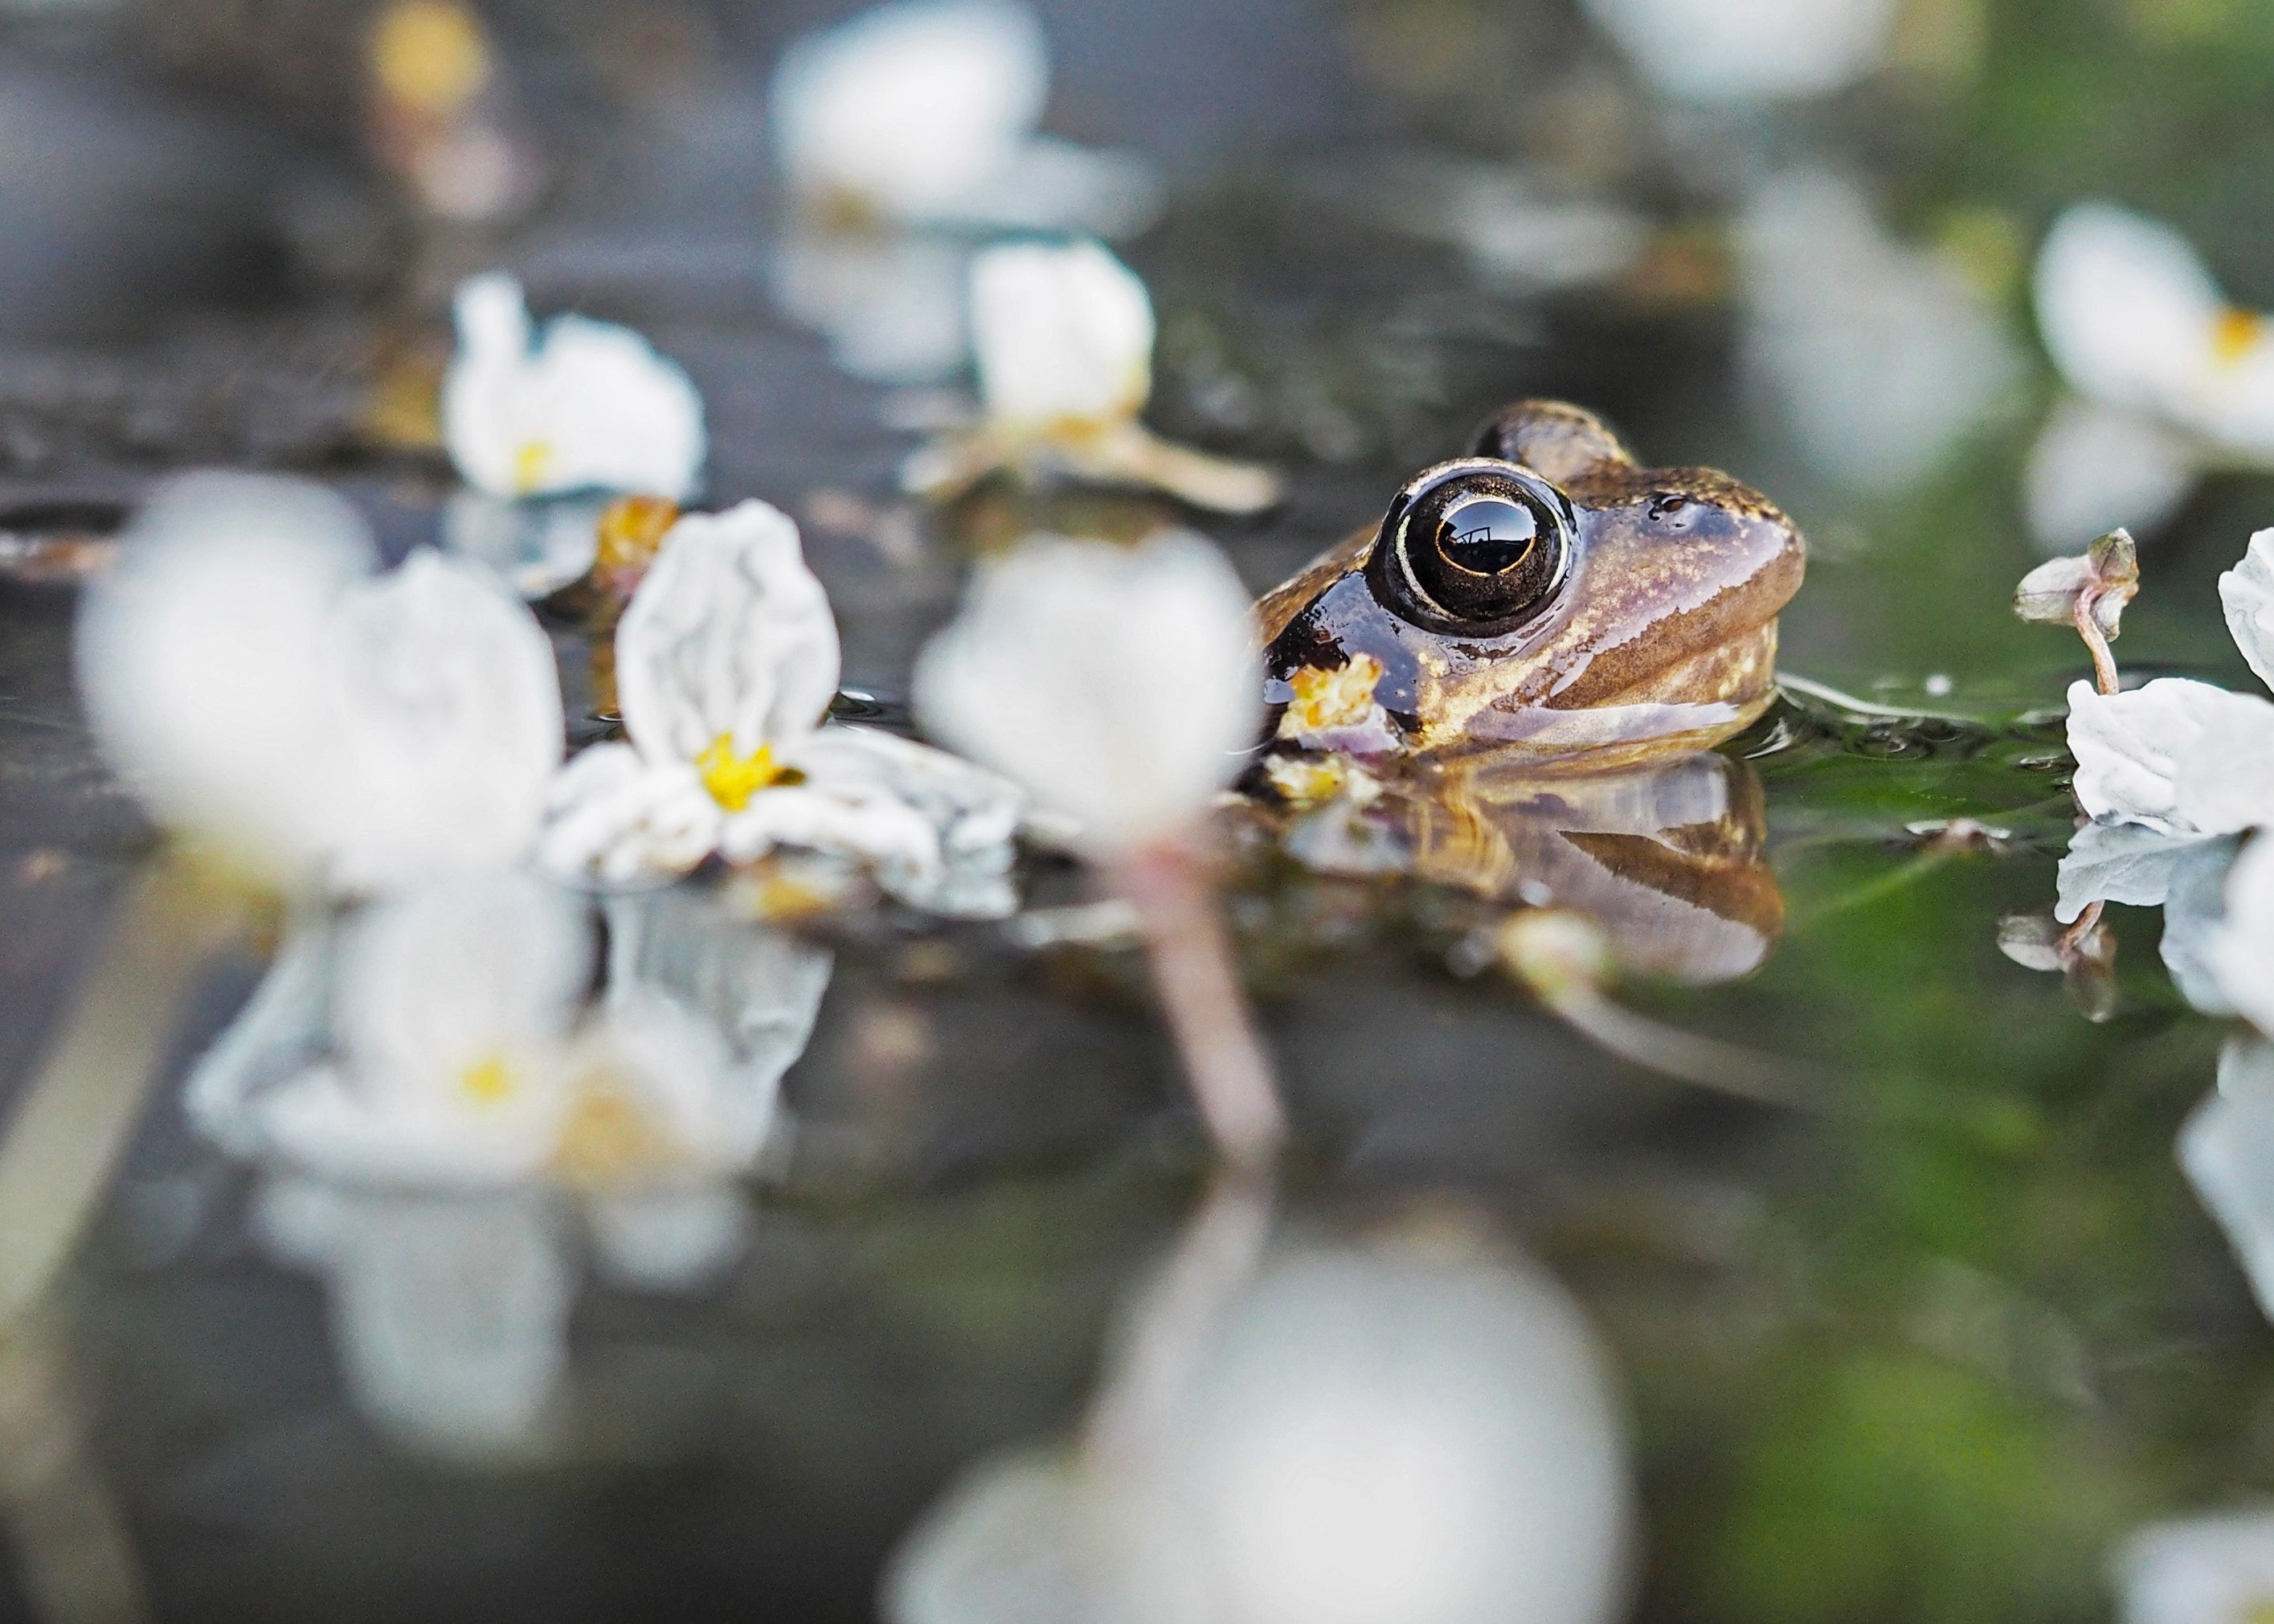 Hd Frog Images